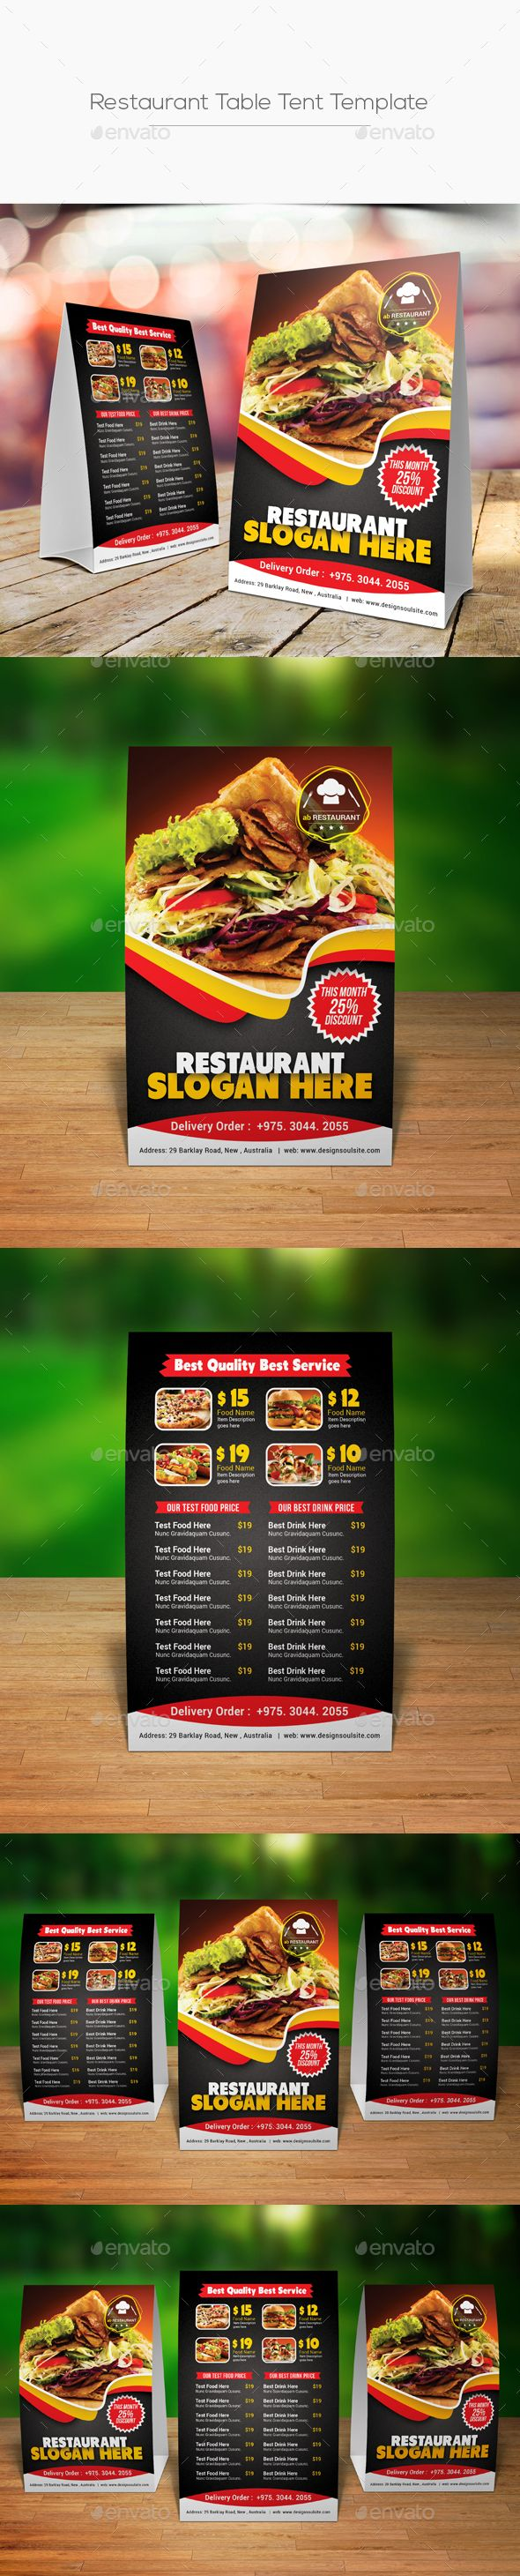 Restaurant Table Tent Template  Table Tents Restaurant Tables